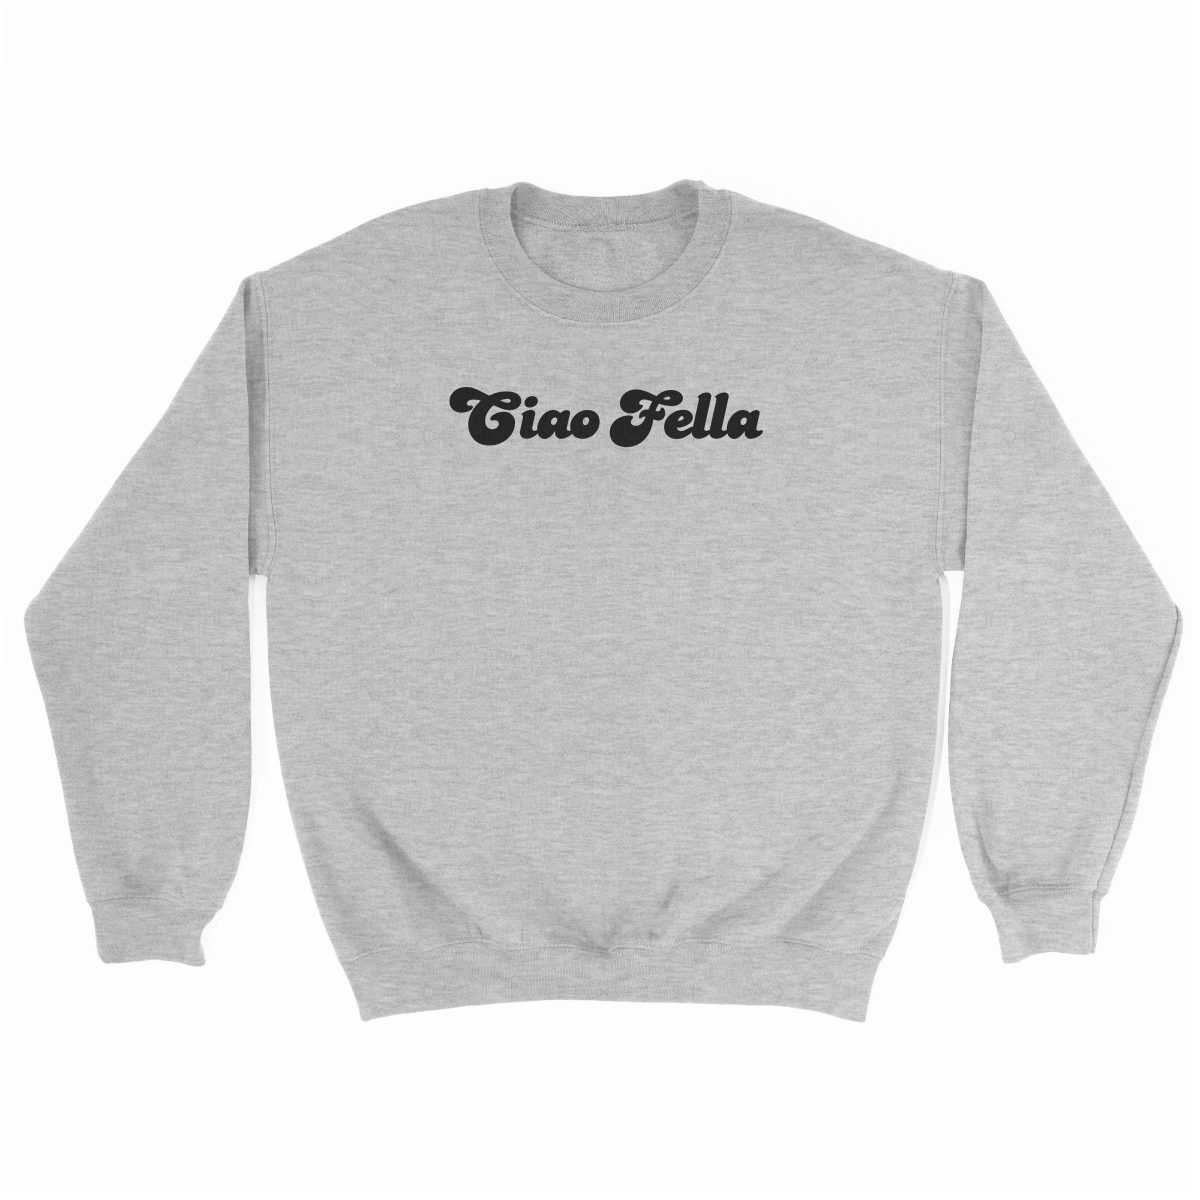 """CIAO FELLA"" funny sweatshirt in grey by kikicutt"